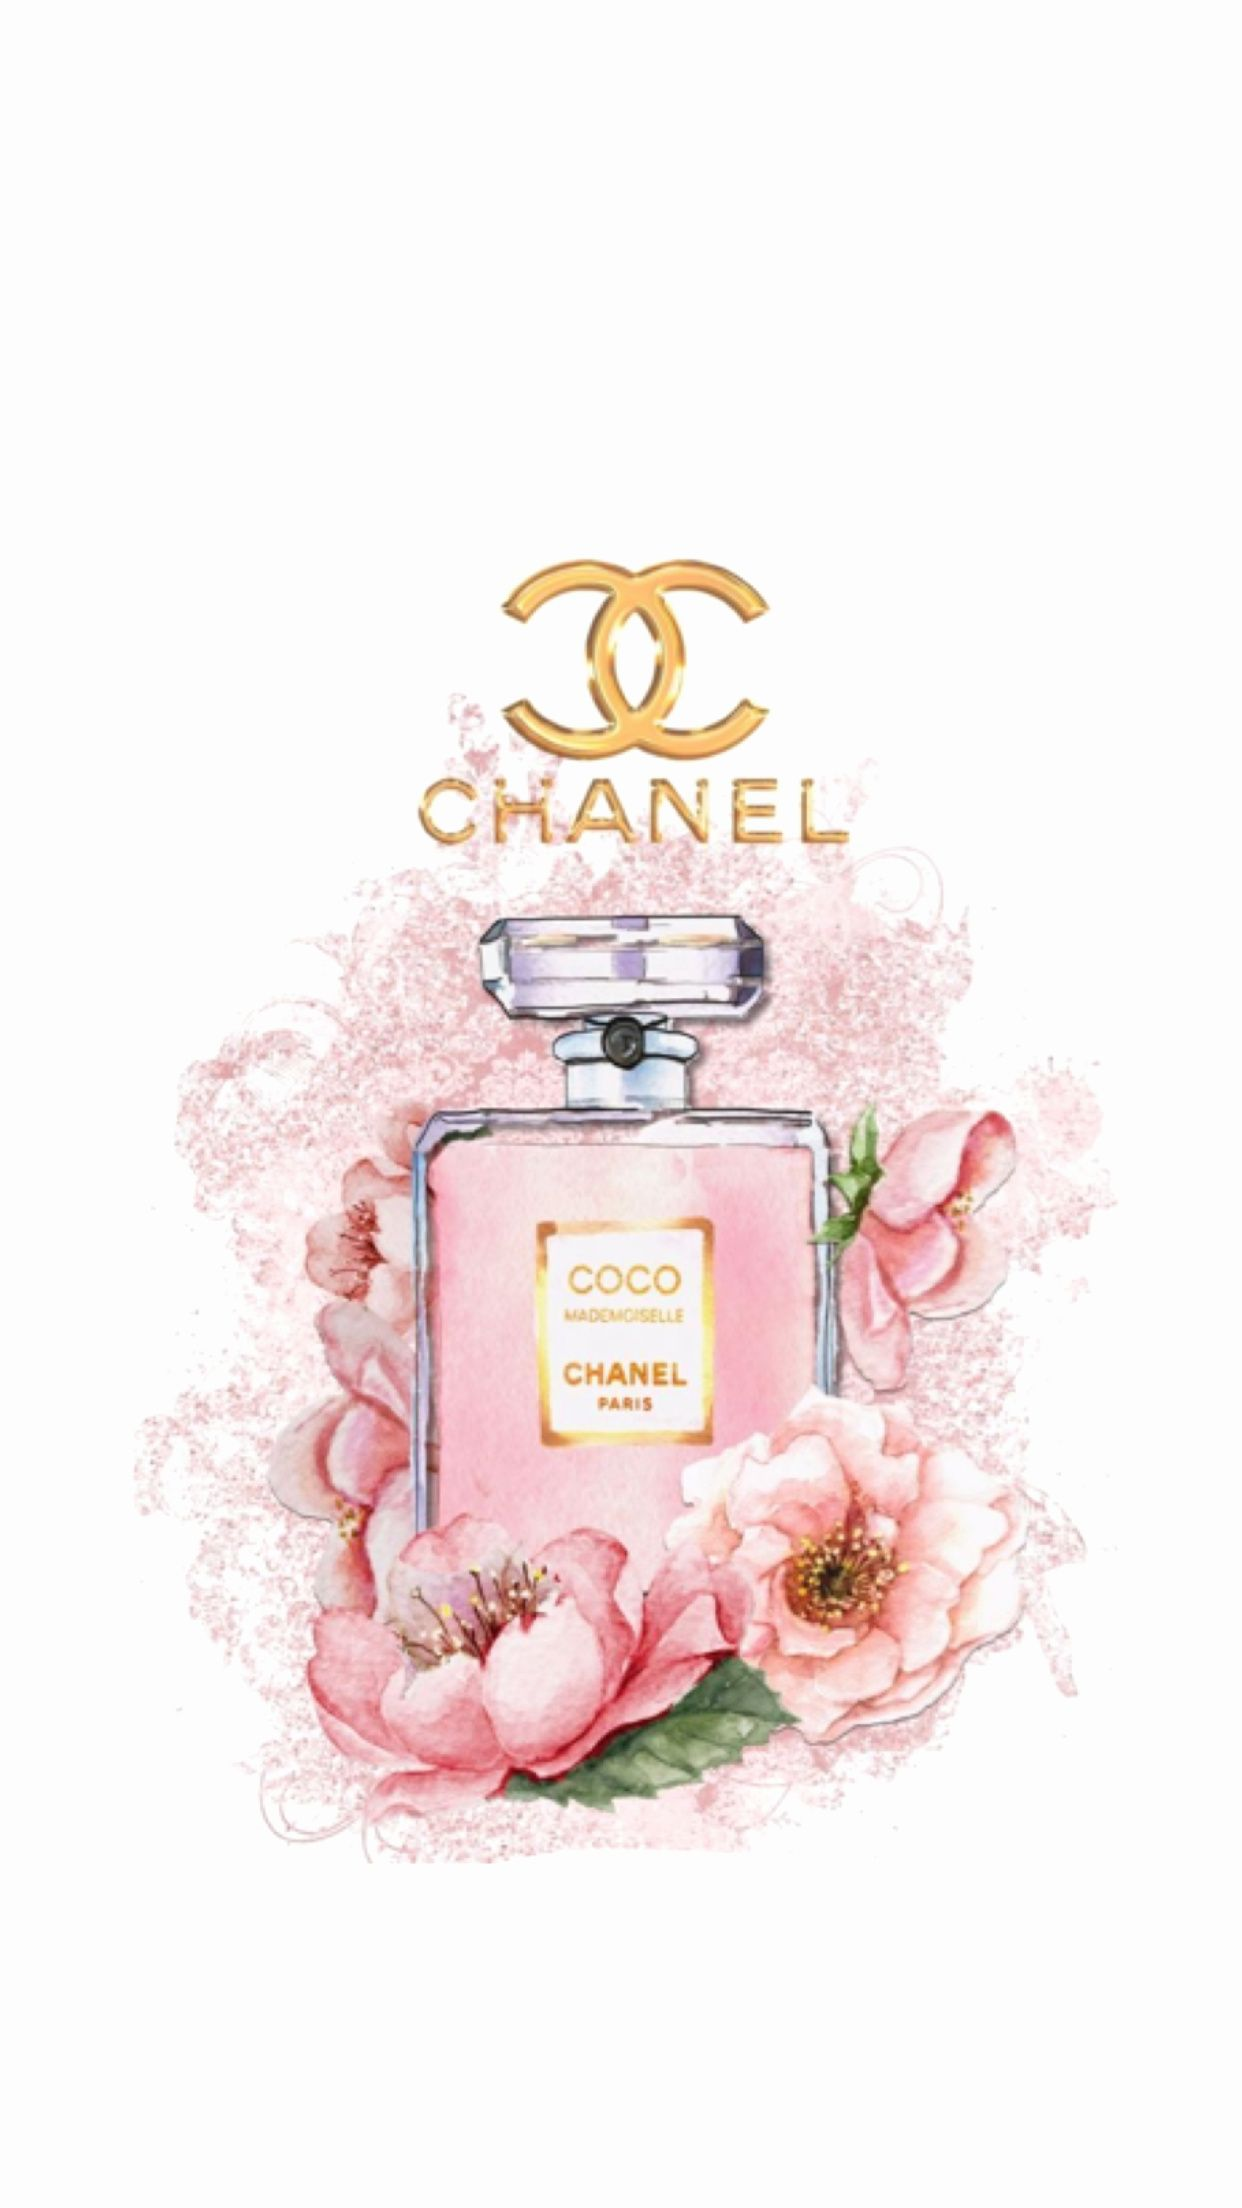 Wallpaper Channel Group Pictures 43 Chanel Wallpapers Pink Wallpaper Iphone Chanel Wall Art